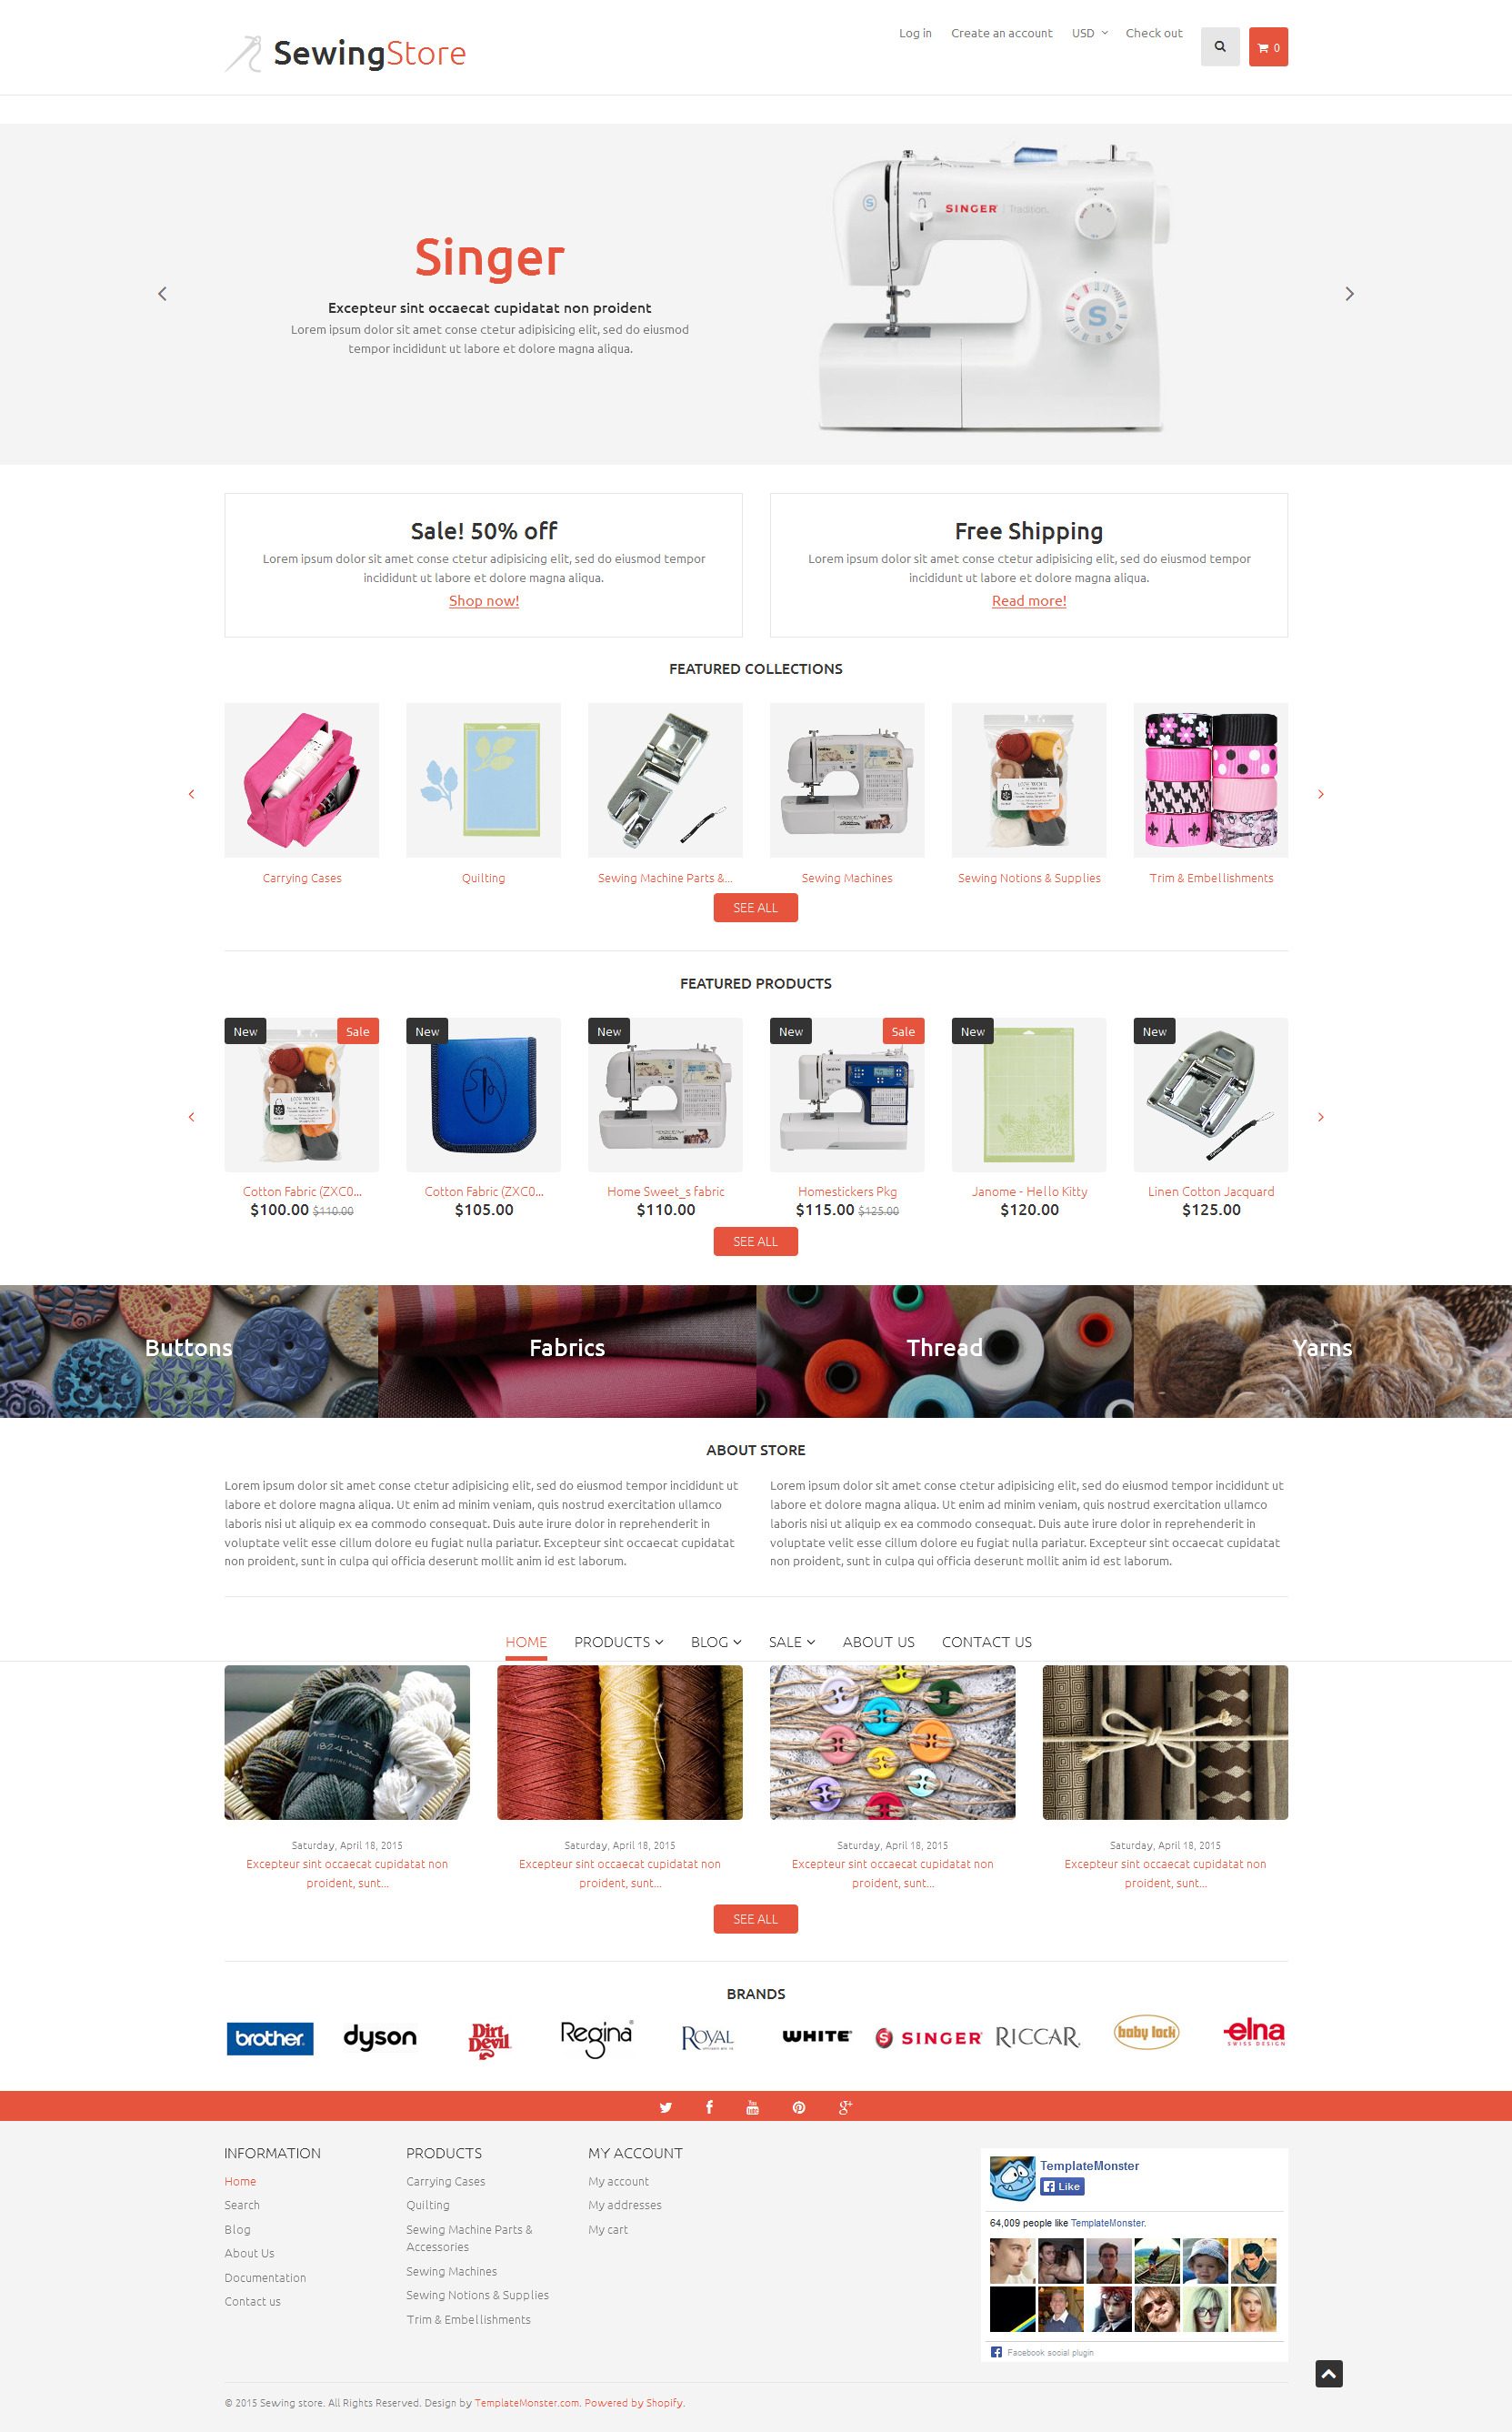 The Sewing Store Shopify Design 53744, one of the best Shopify themes of its kind (hobbies & crafts), also known as sewing store Shopify template, silks Shopify template, woollen Shopify template, cloth Shopify template, light Shopify template, fabric Shopify template, embroidery Shopify template, buttons Shopify template, decor Shopify template, crafts and related with sewing store, silks, woollen, cloth, light, fabric, embroidery, buttons, decor, crafts, etc.